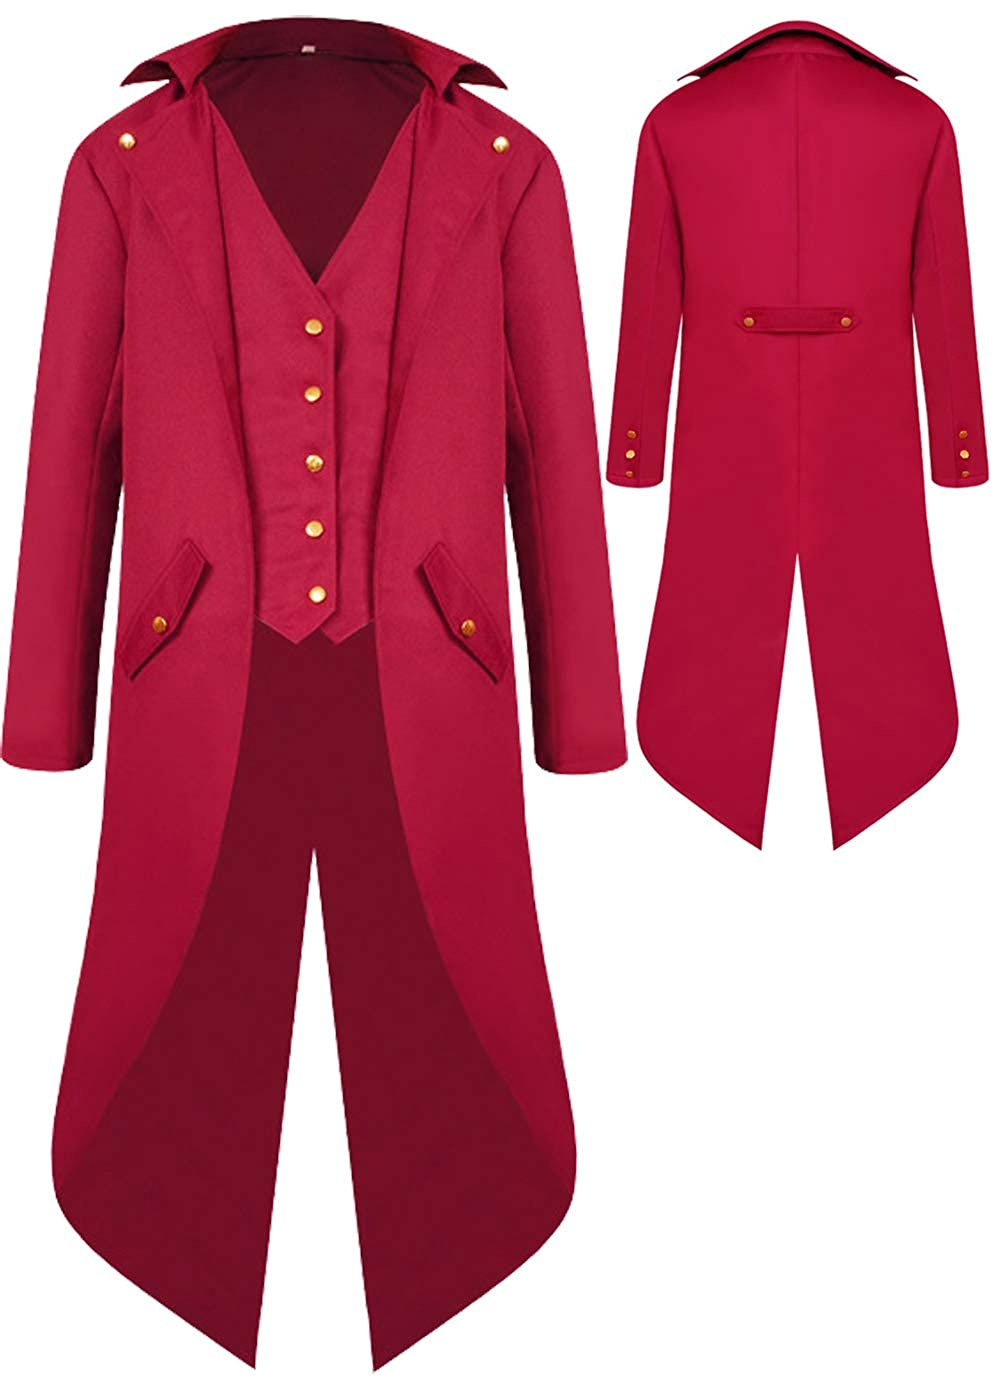 Mens Gothic Medieval Tailcoat Jacket, Steampunk Vintage Victorian Frock High Collar Coat (S, Red)